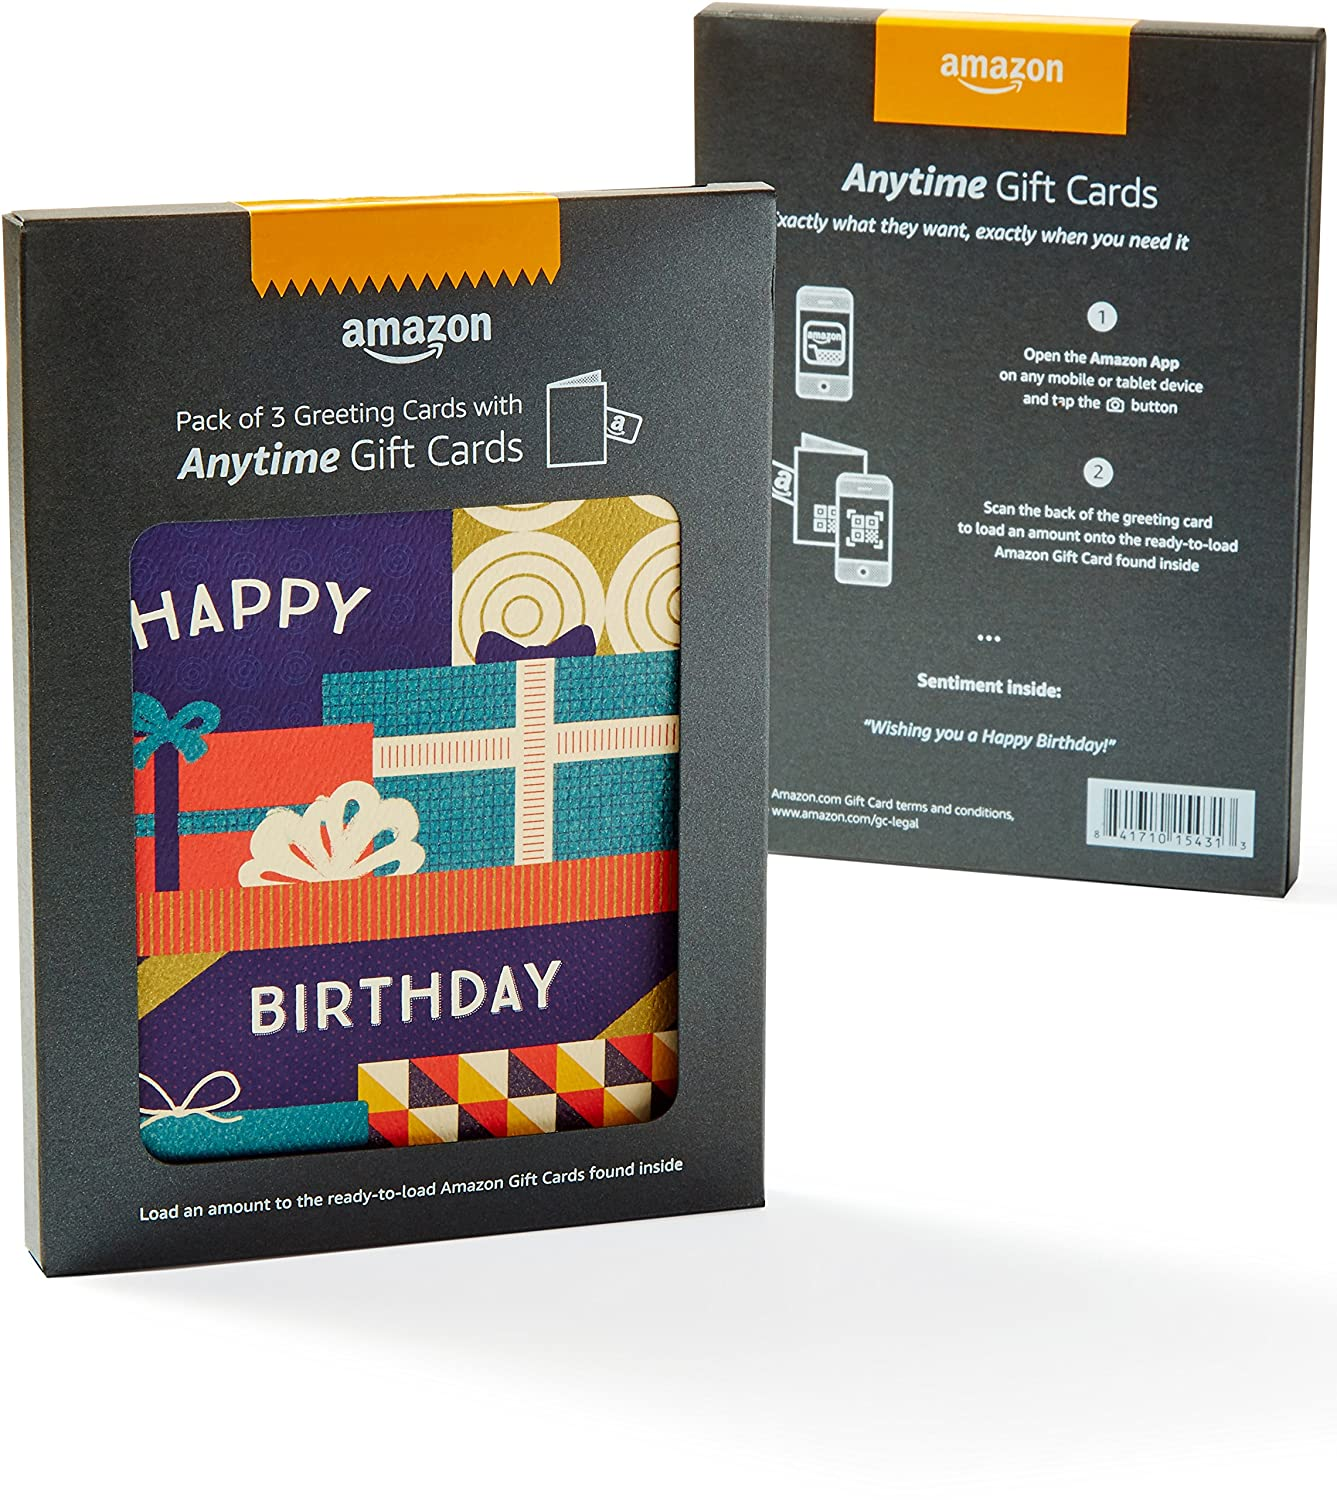 Amazon Amazon Happy Birthday Premium Greeting Card with